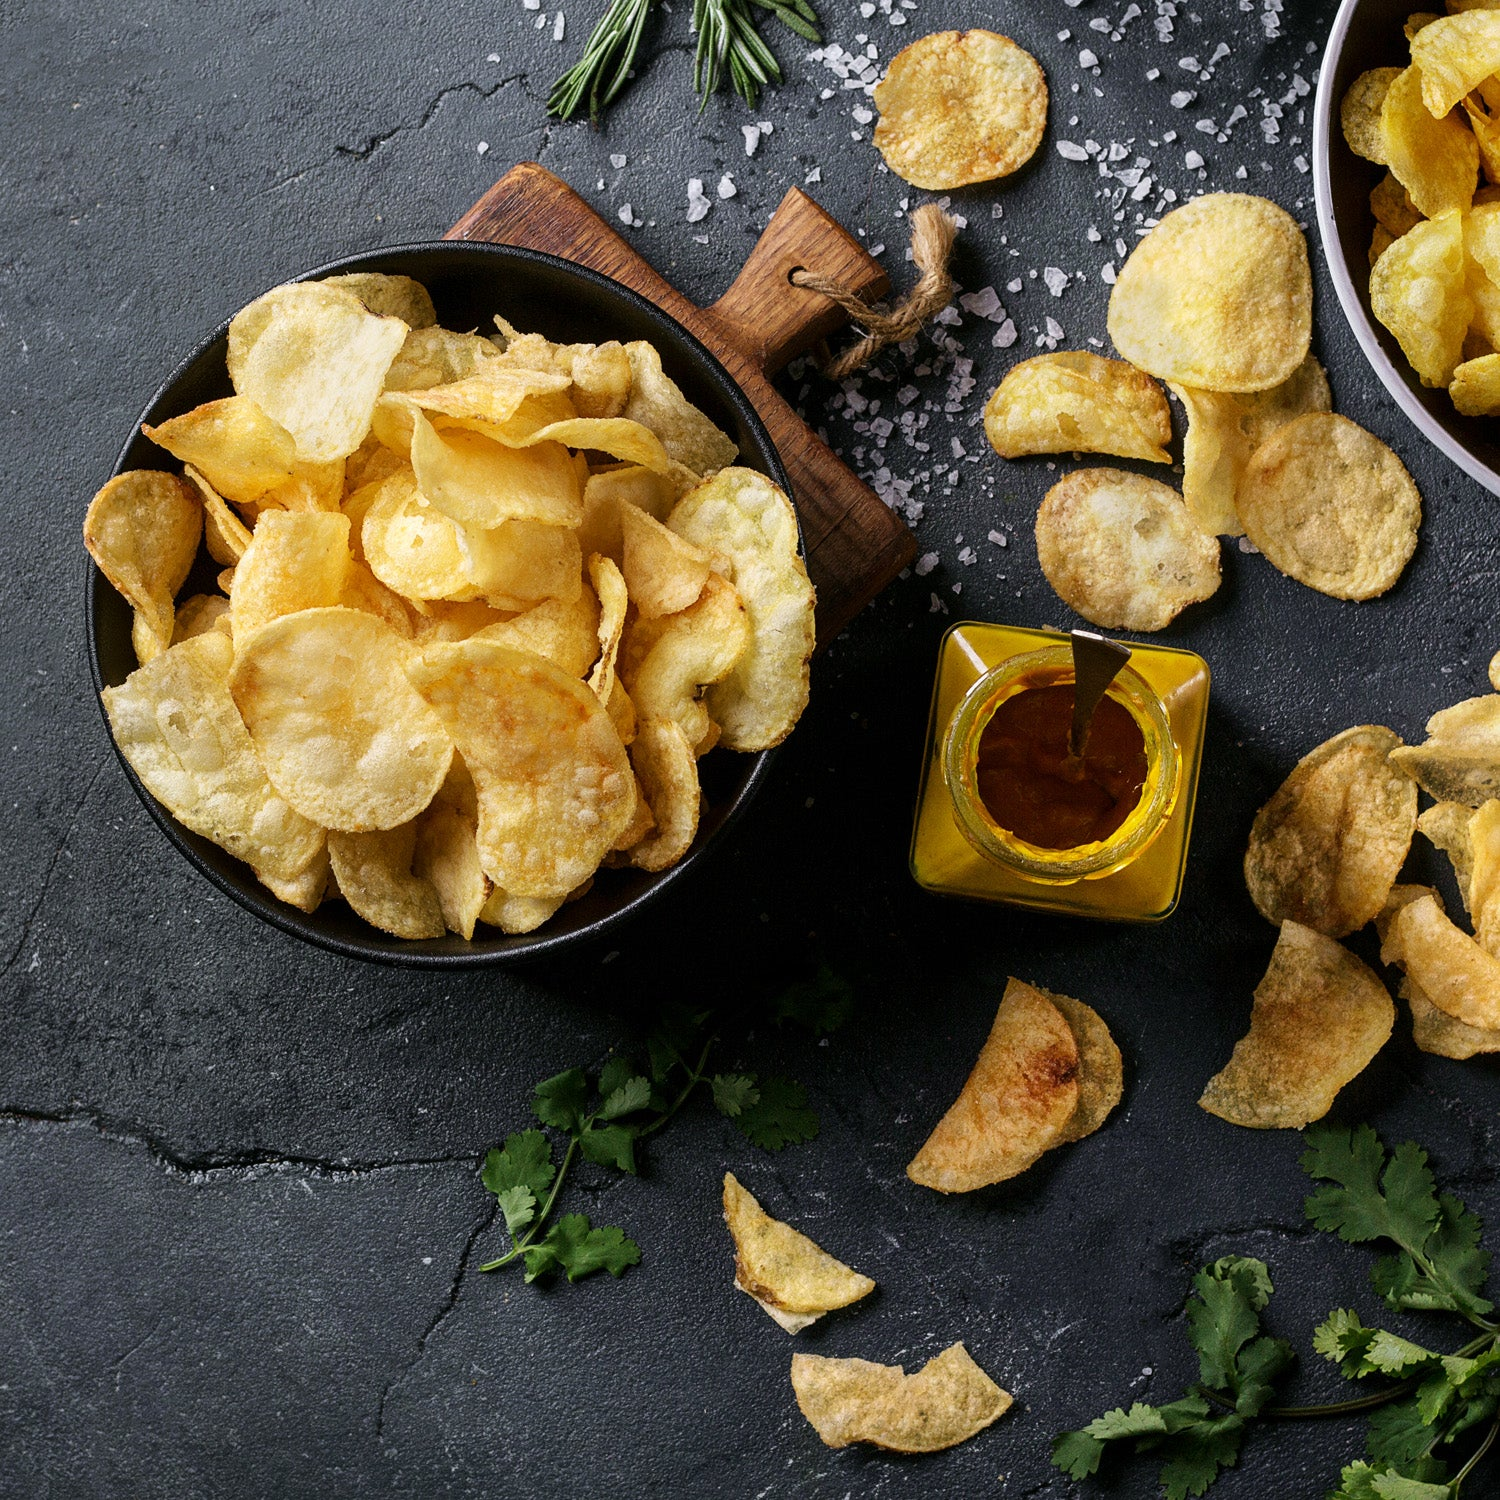 What Are The Healthiest Crisps? 8 Low-Calorie, Low-Fat Options